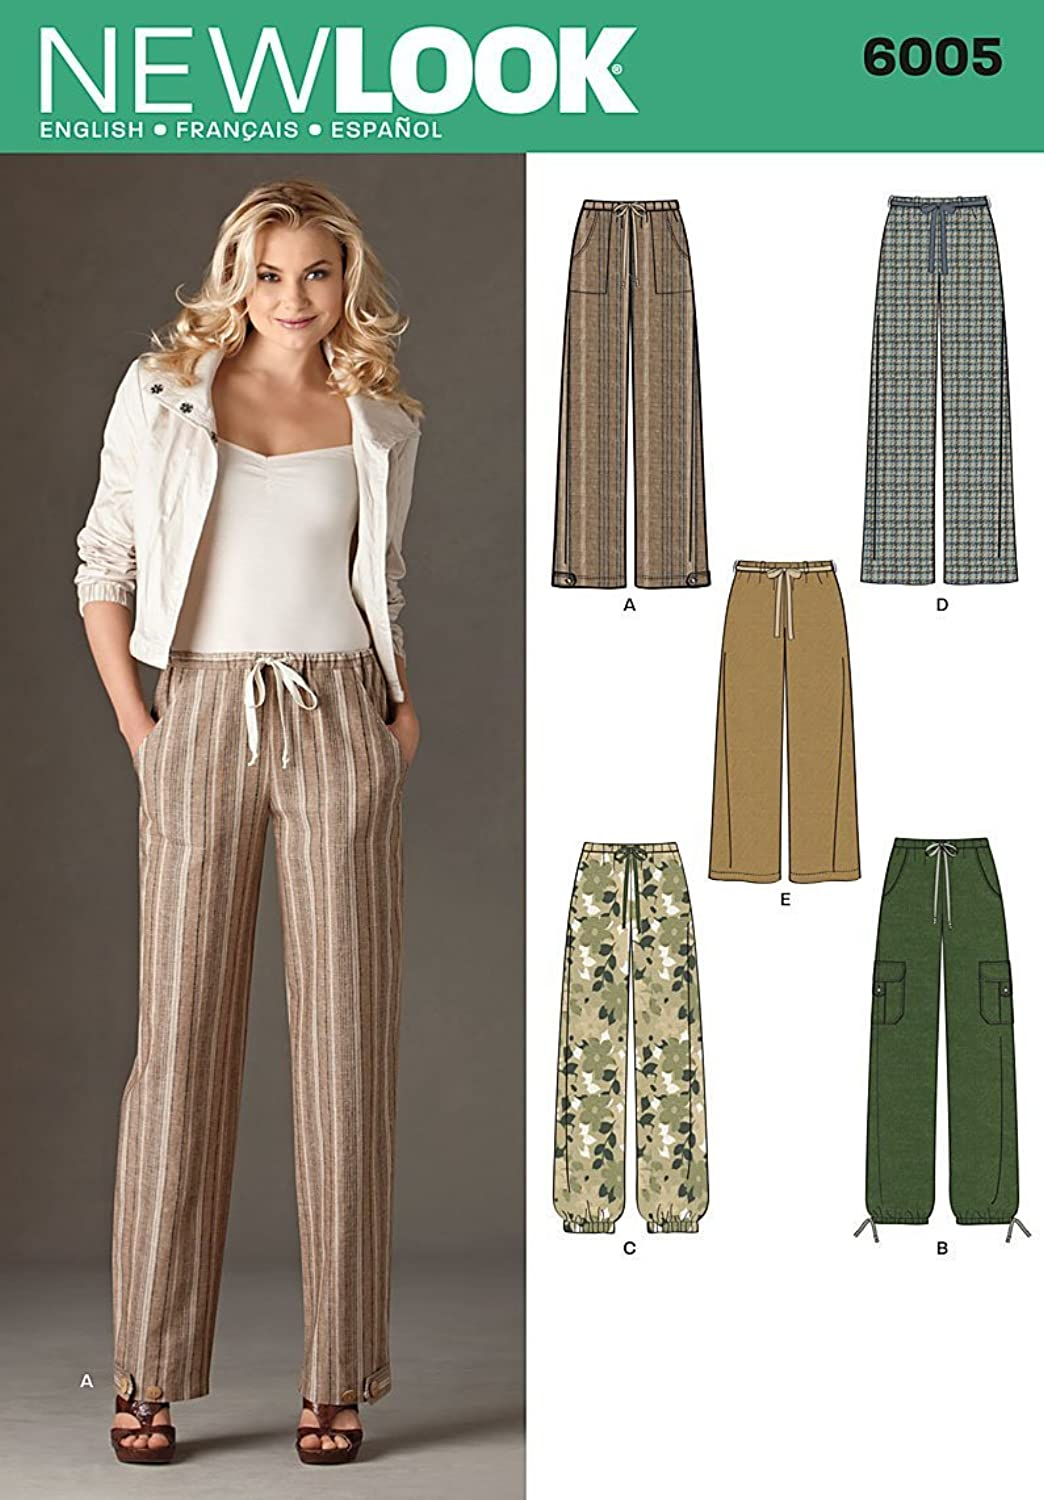 New Look Sewing Pattern 6005 Misses' Pants, Size A (10-12-14-16-18-20-22)